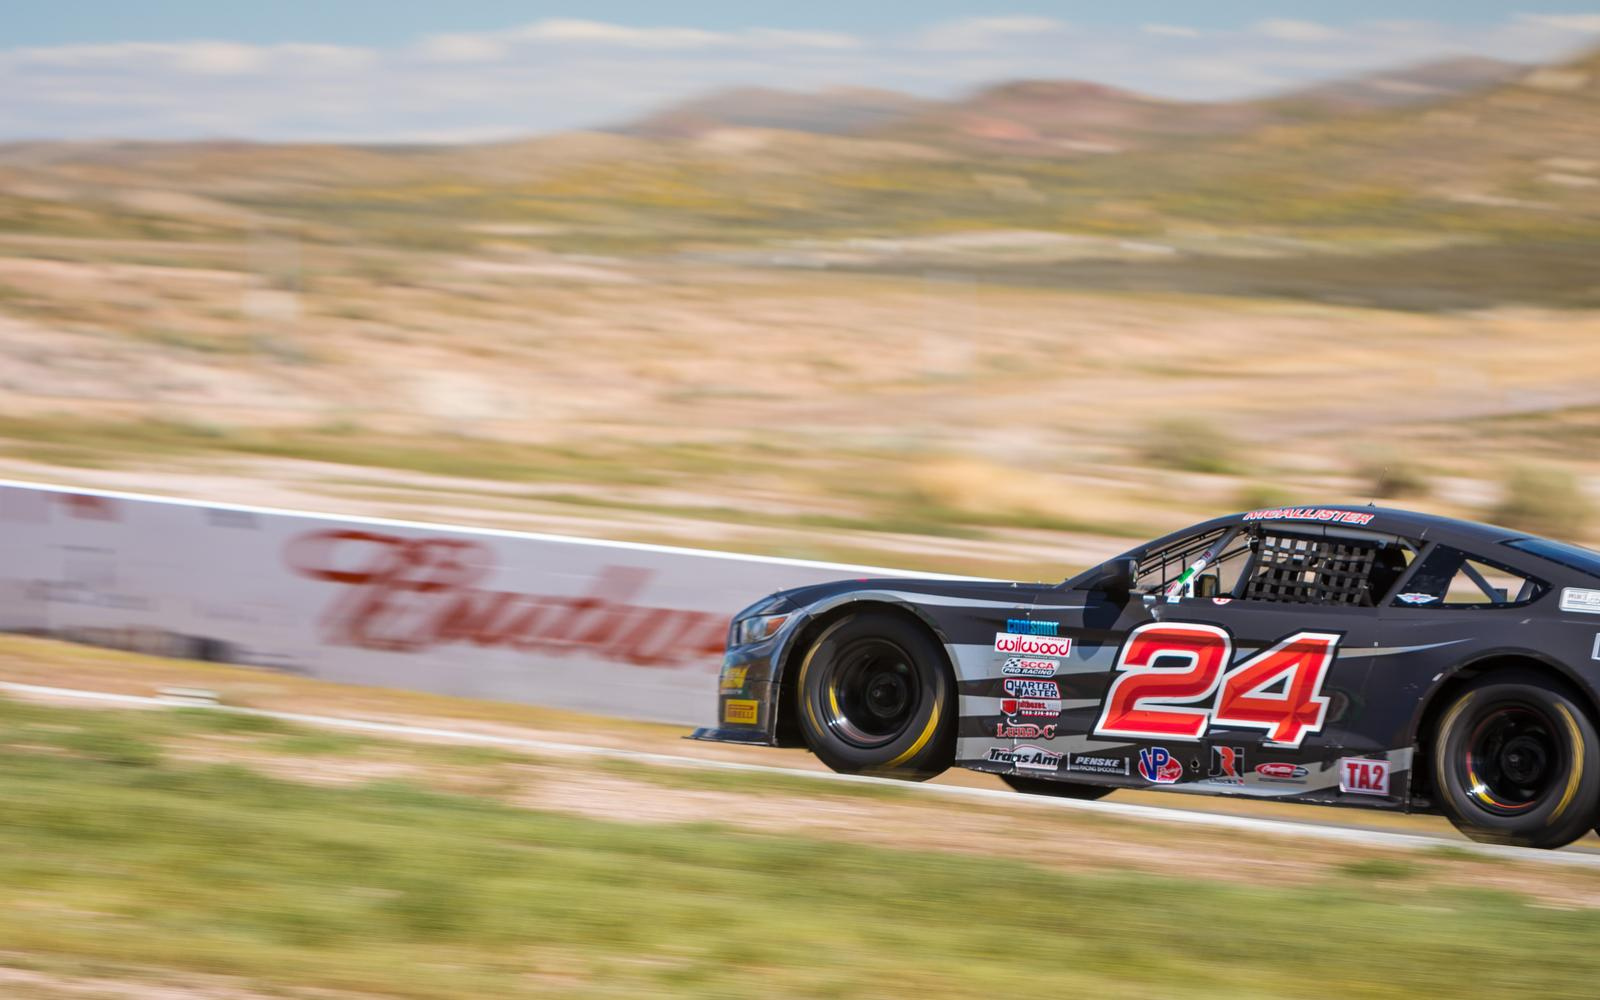 Trans Am West heads back to California for Round 2 at Auto Club Speedway